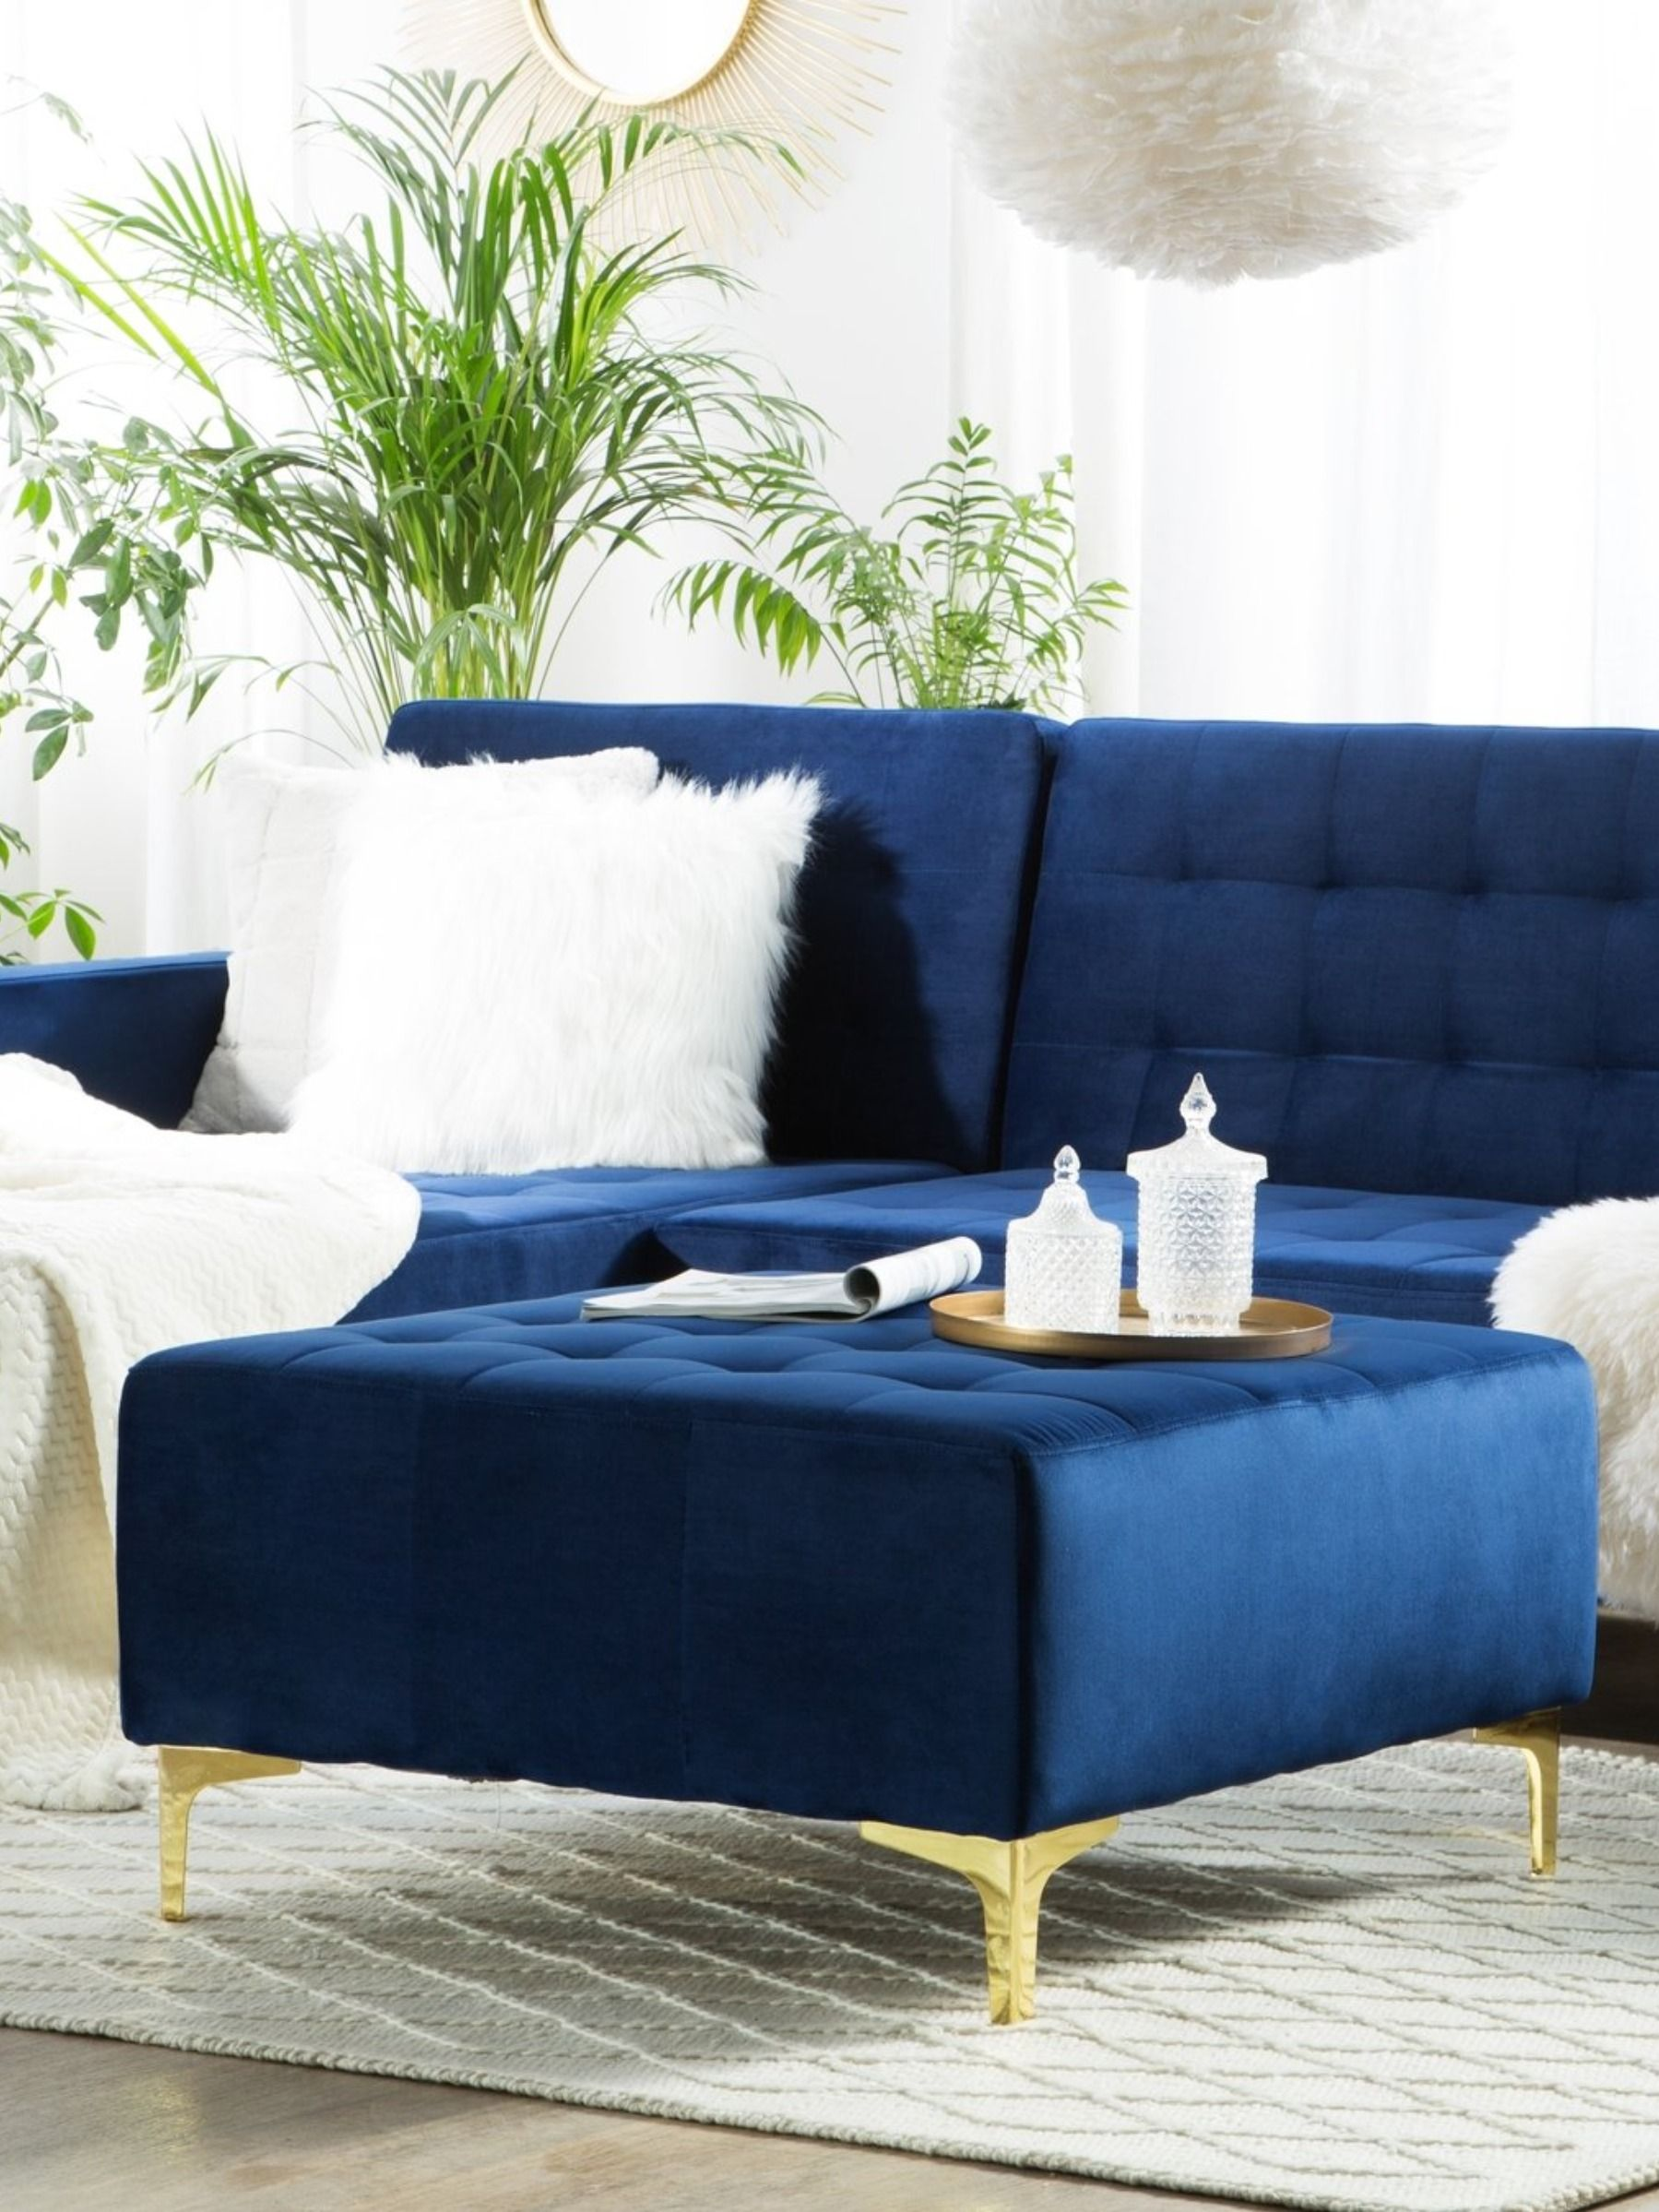 Velvet Ottoman Navy Blue Aberdeen In 2020 Blue Sofa Set Blue Sofas Living Room Blue Ottoman #royal #blue #sectional #living #room